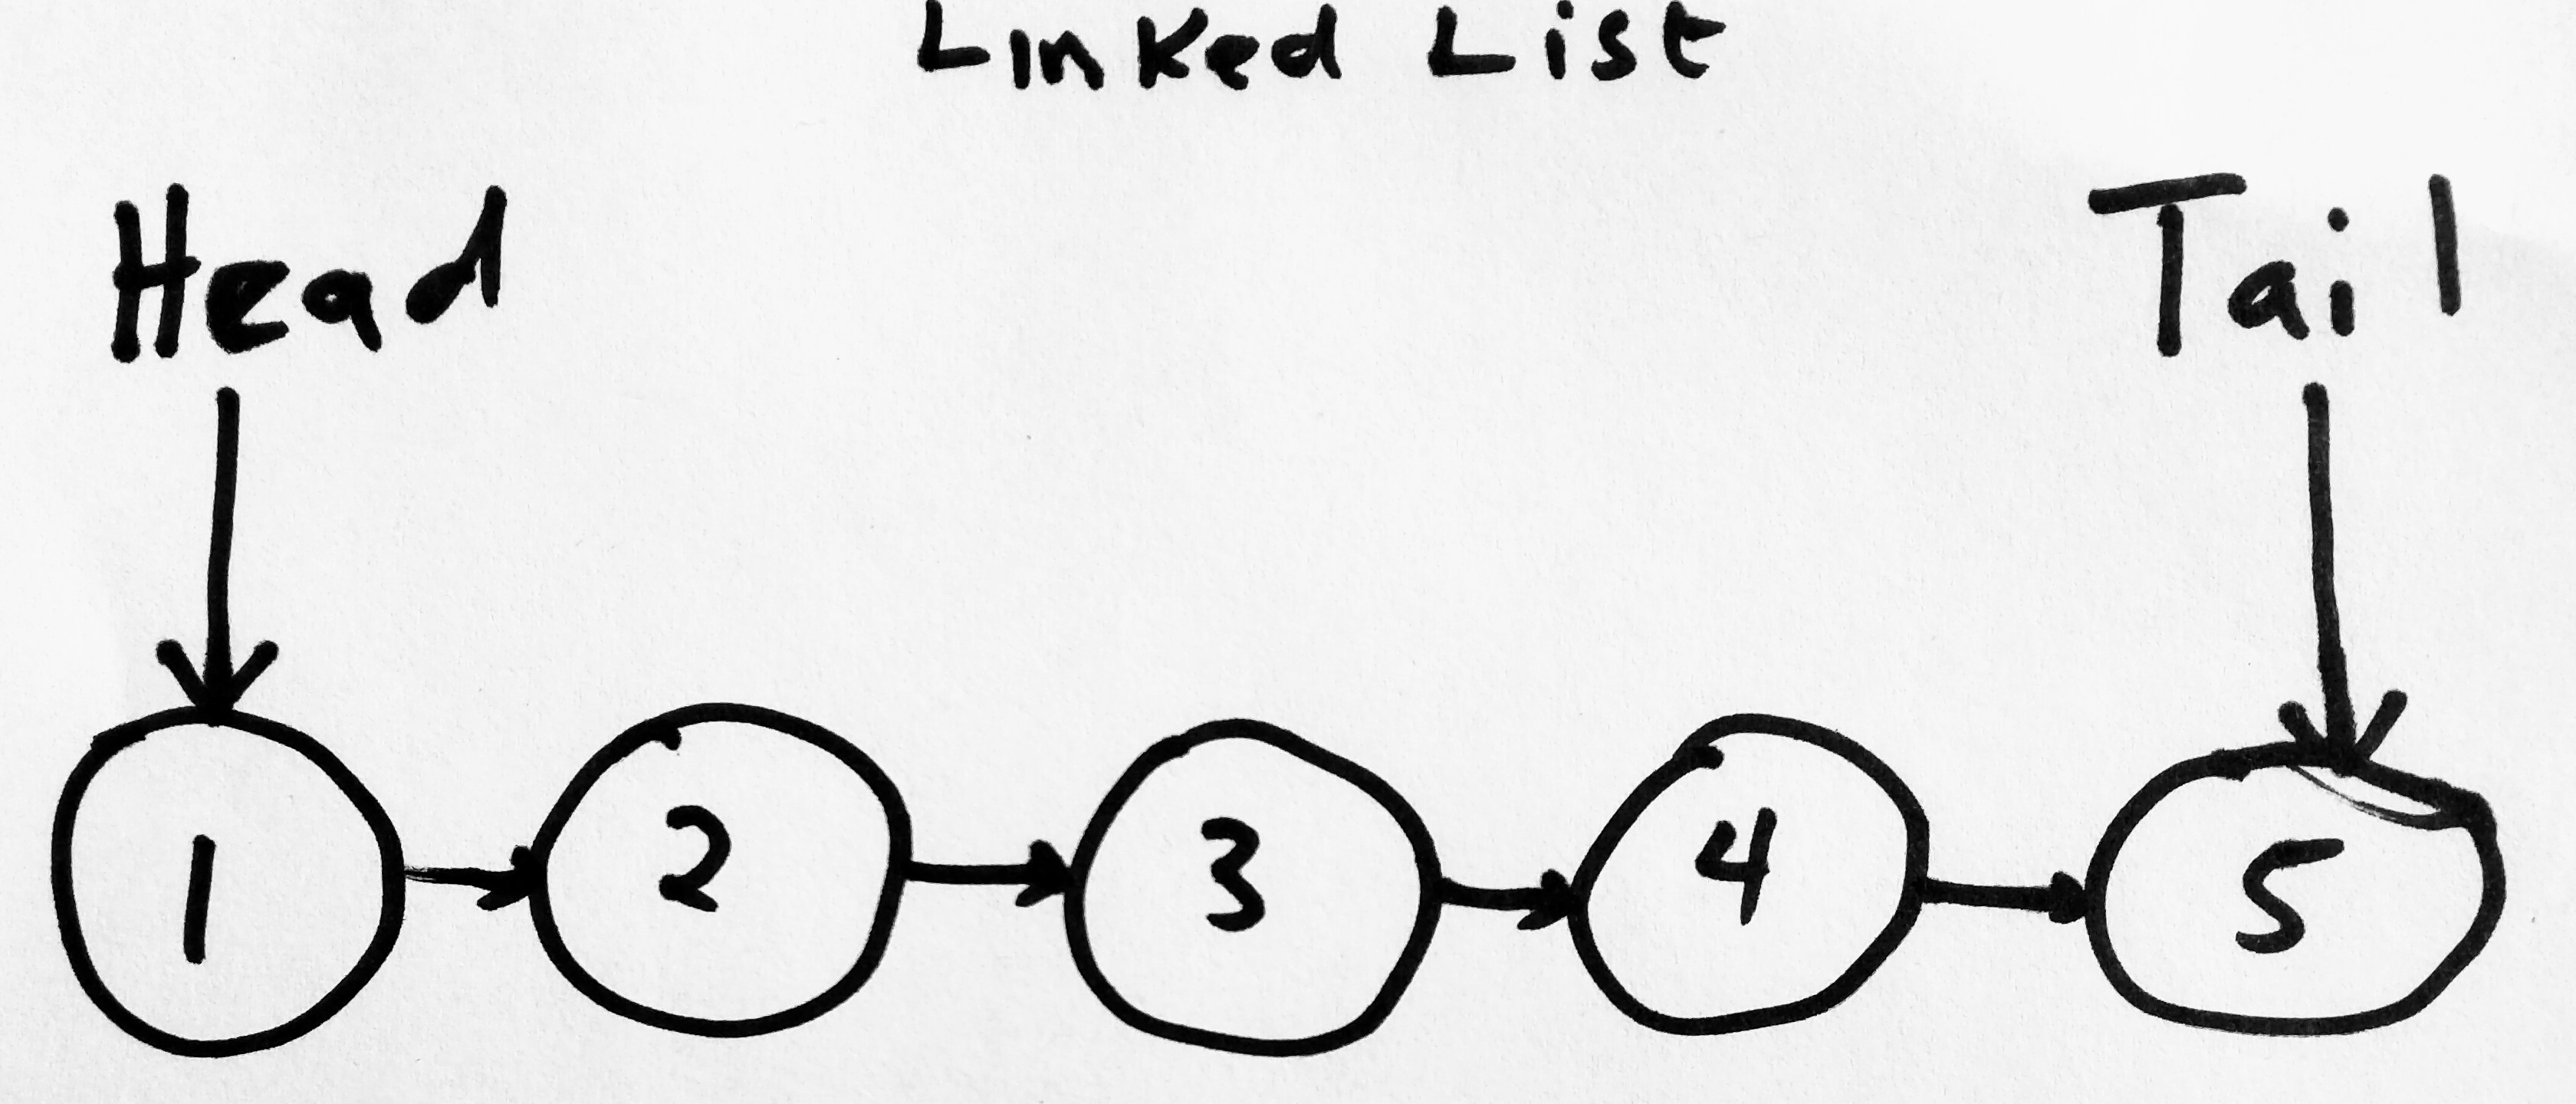 Linked List Head and Tail